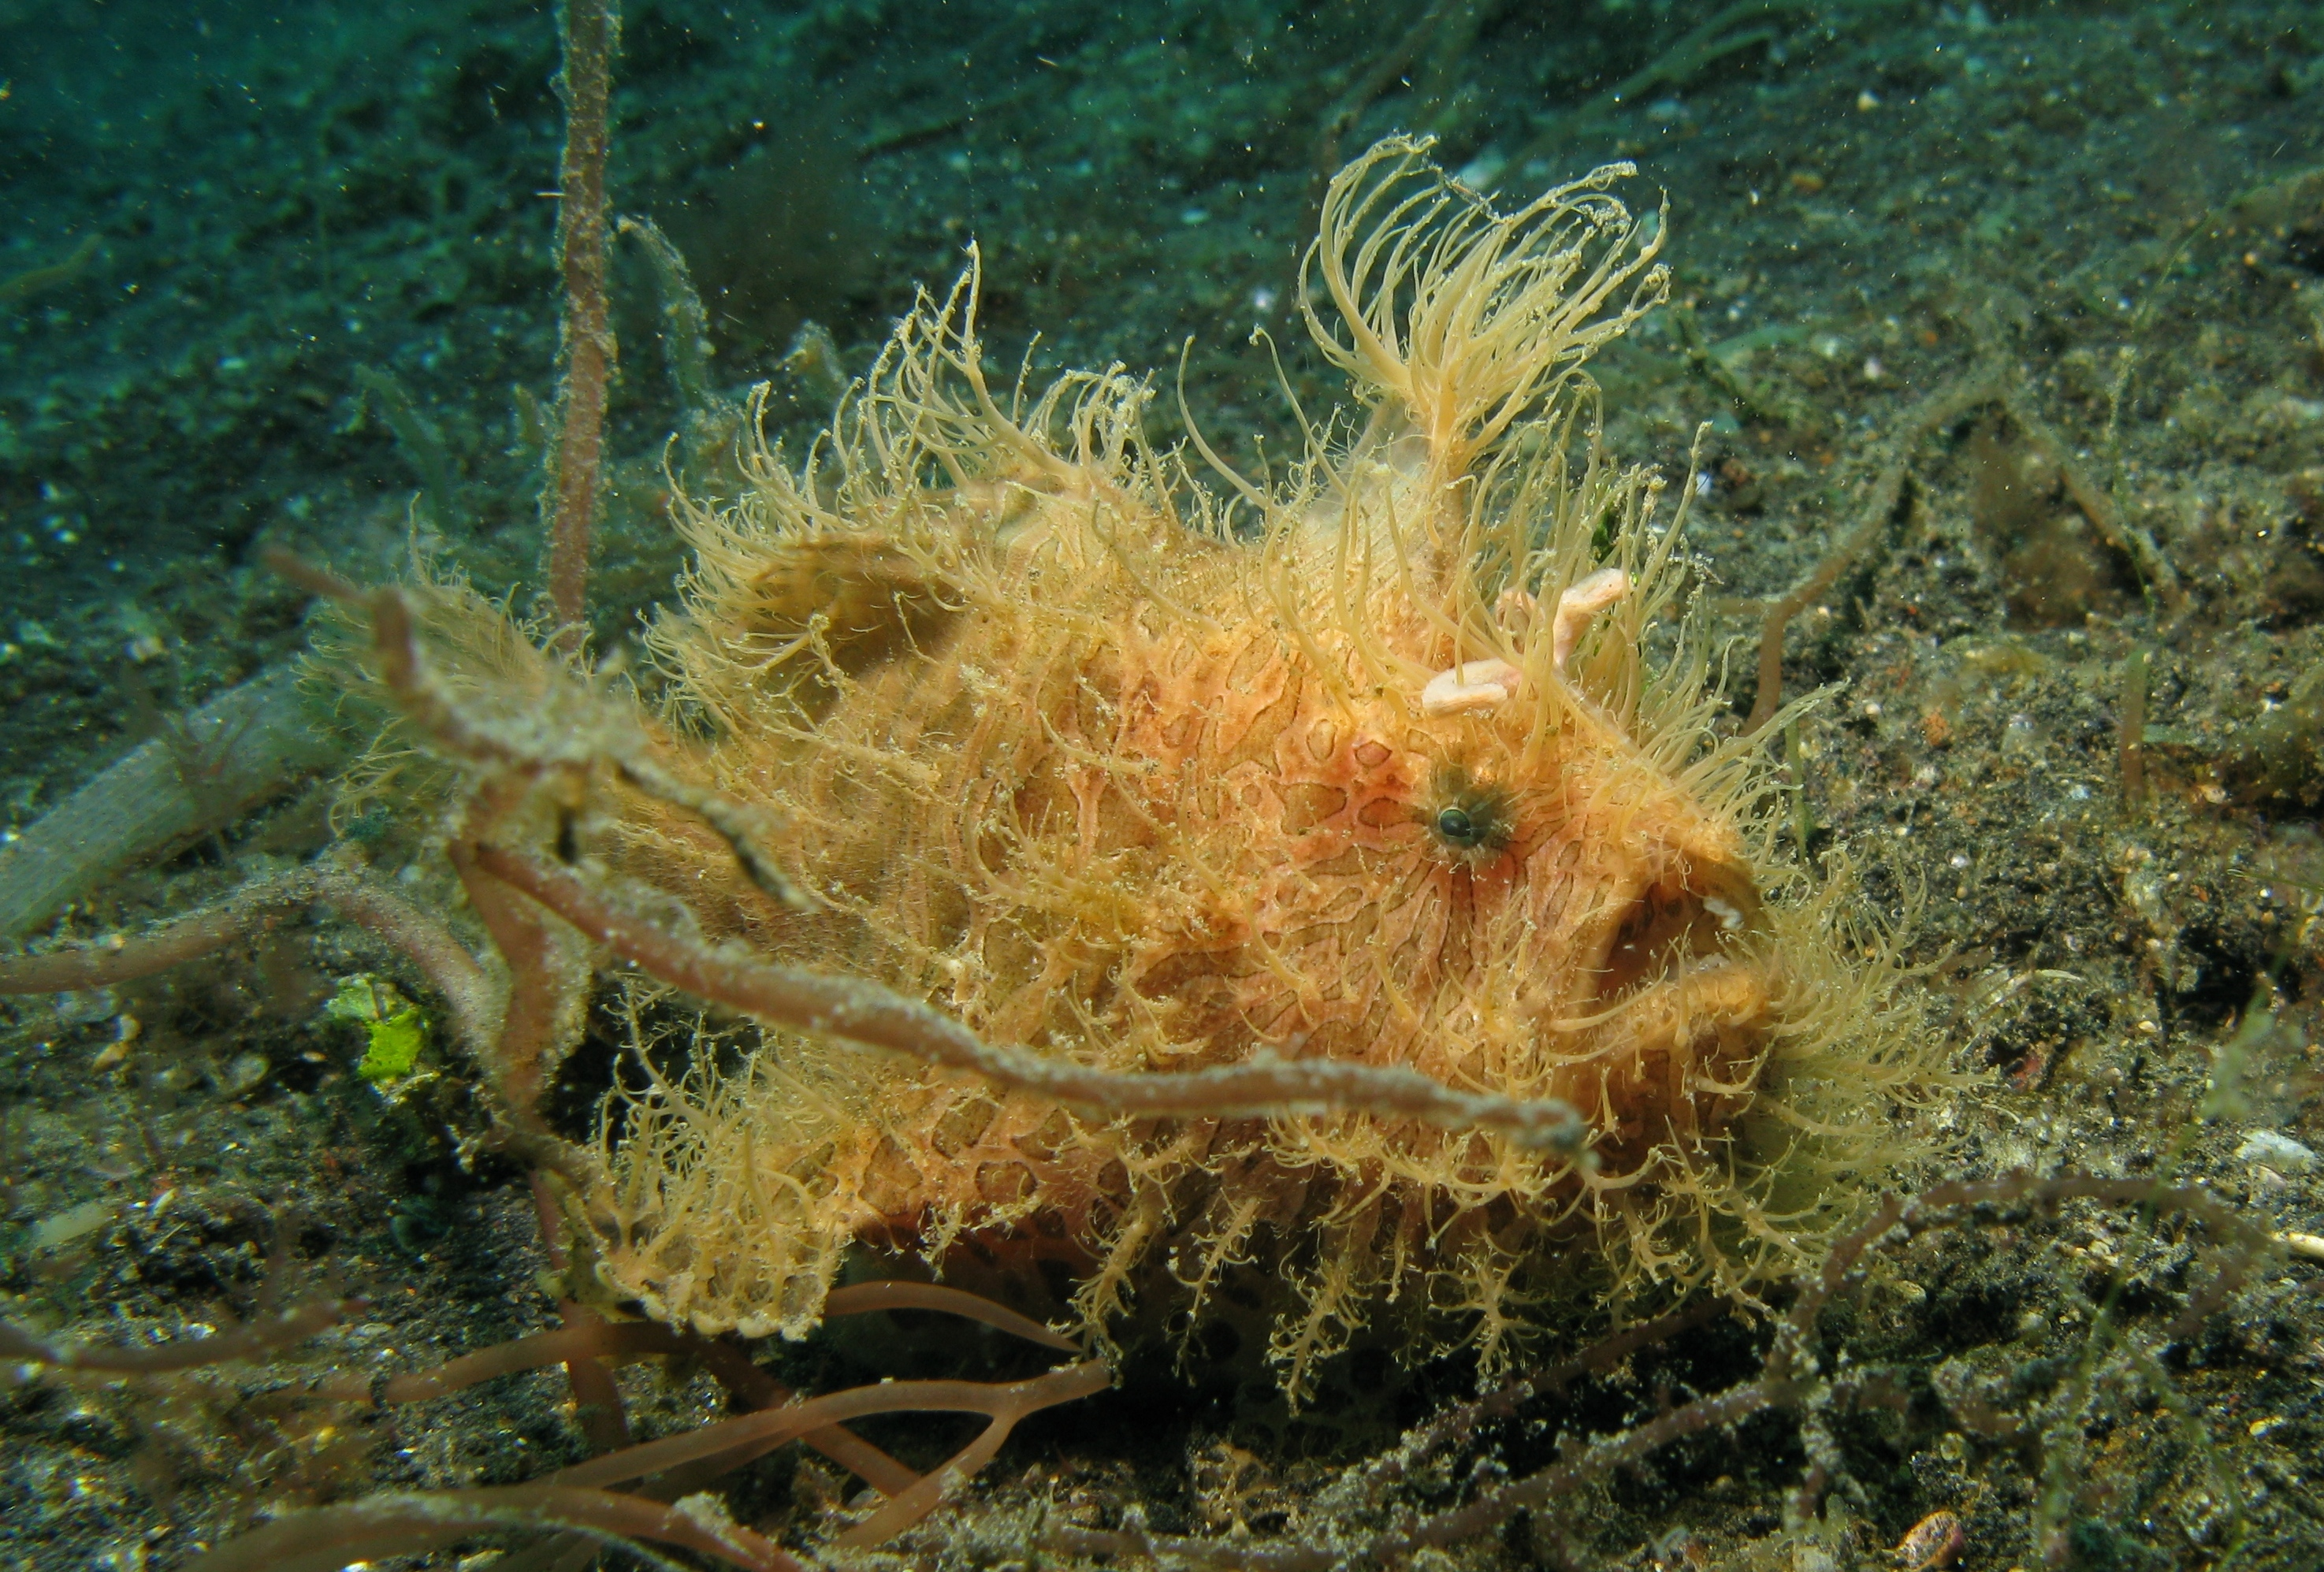 Image of Spitlure Frogfish